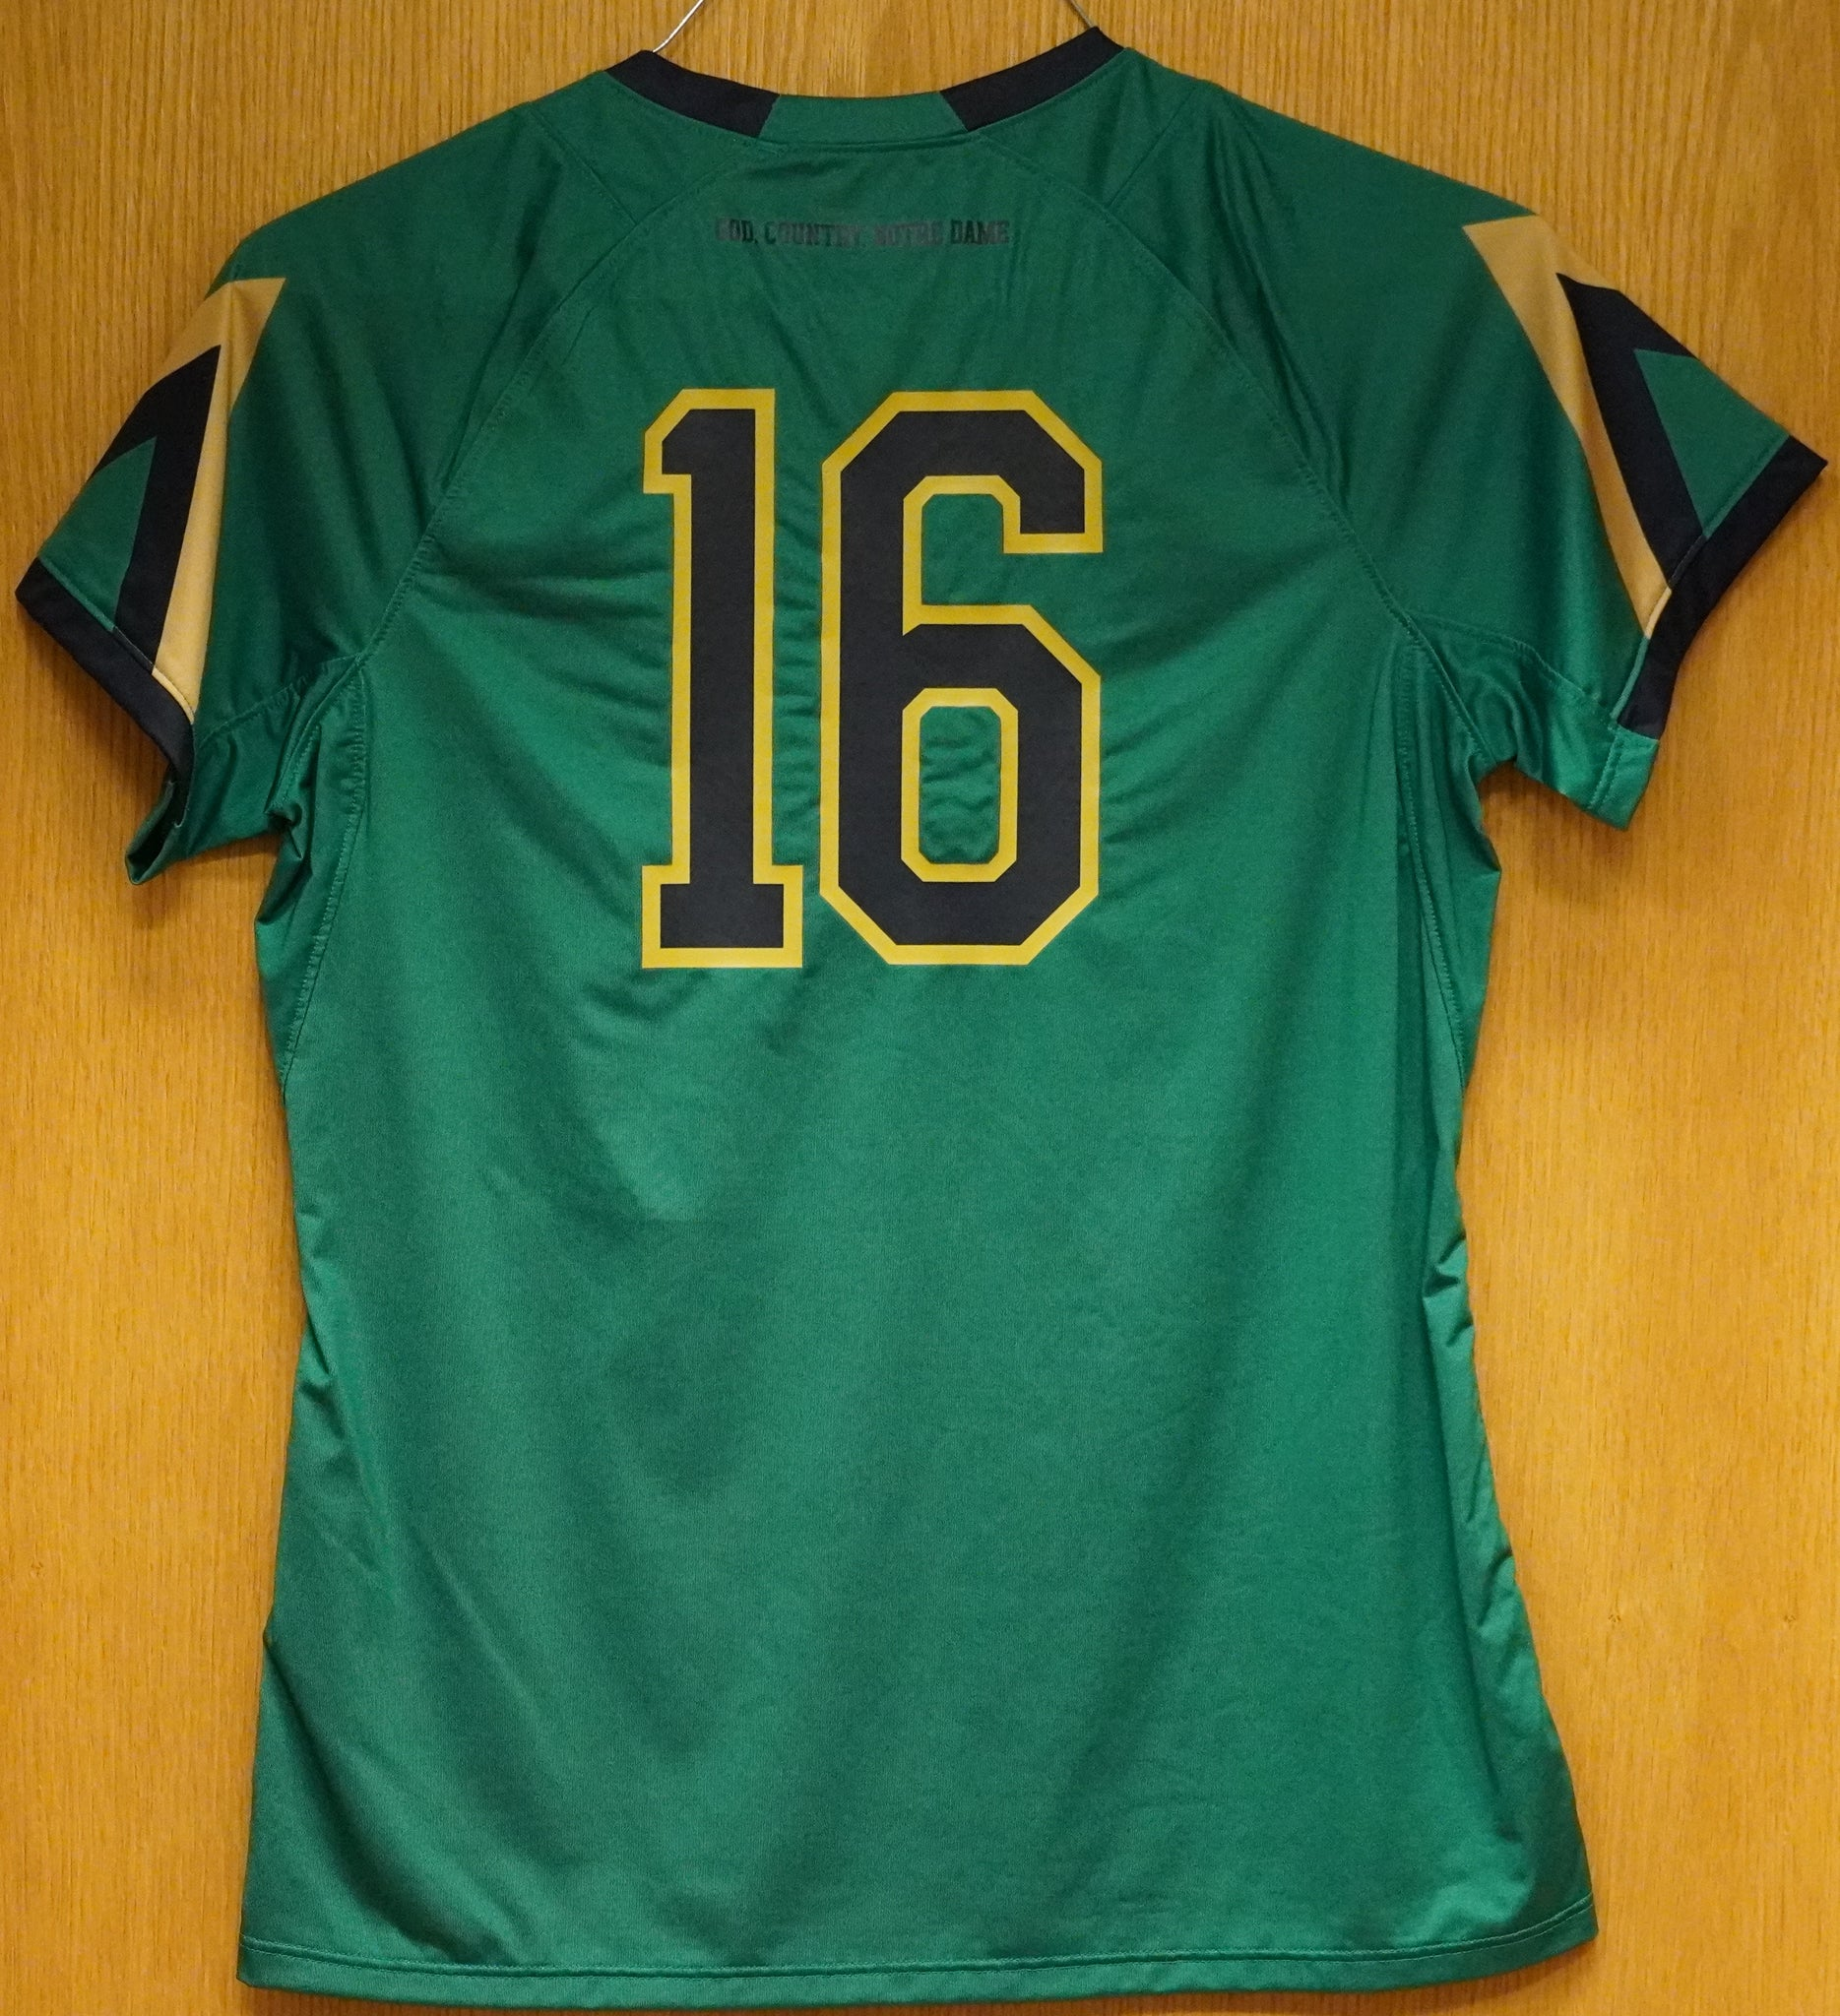 GAME WORN WOMEN'S SOCCER JERSEY #16 (Medium)